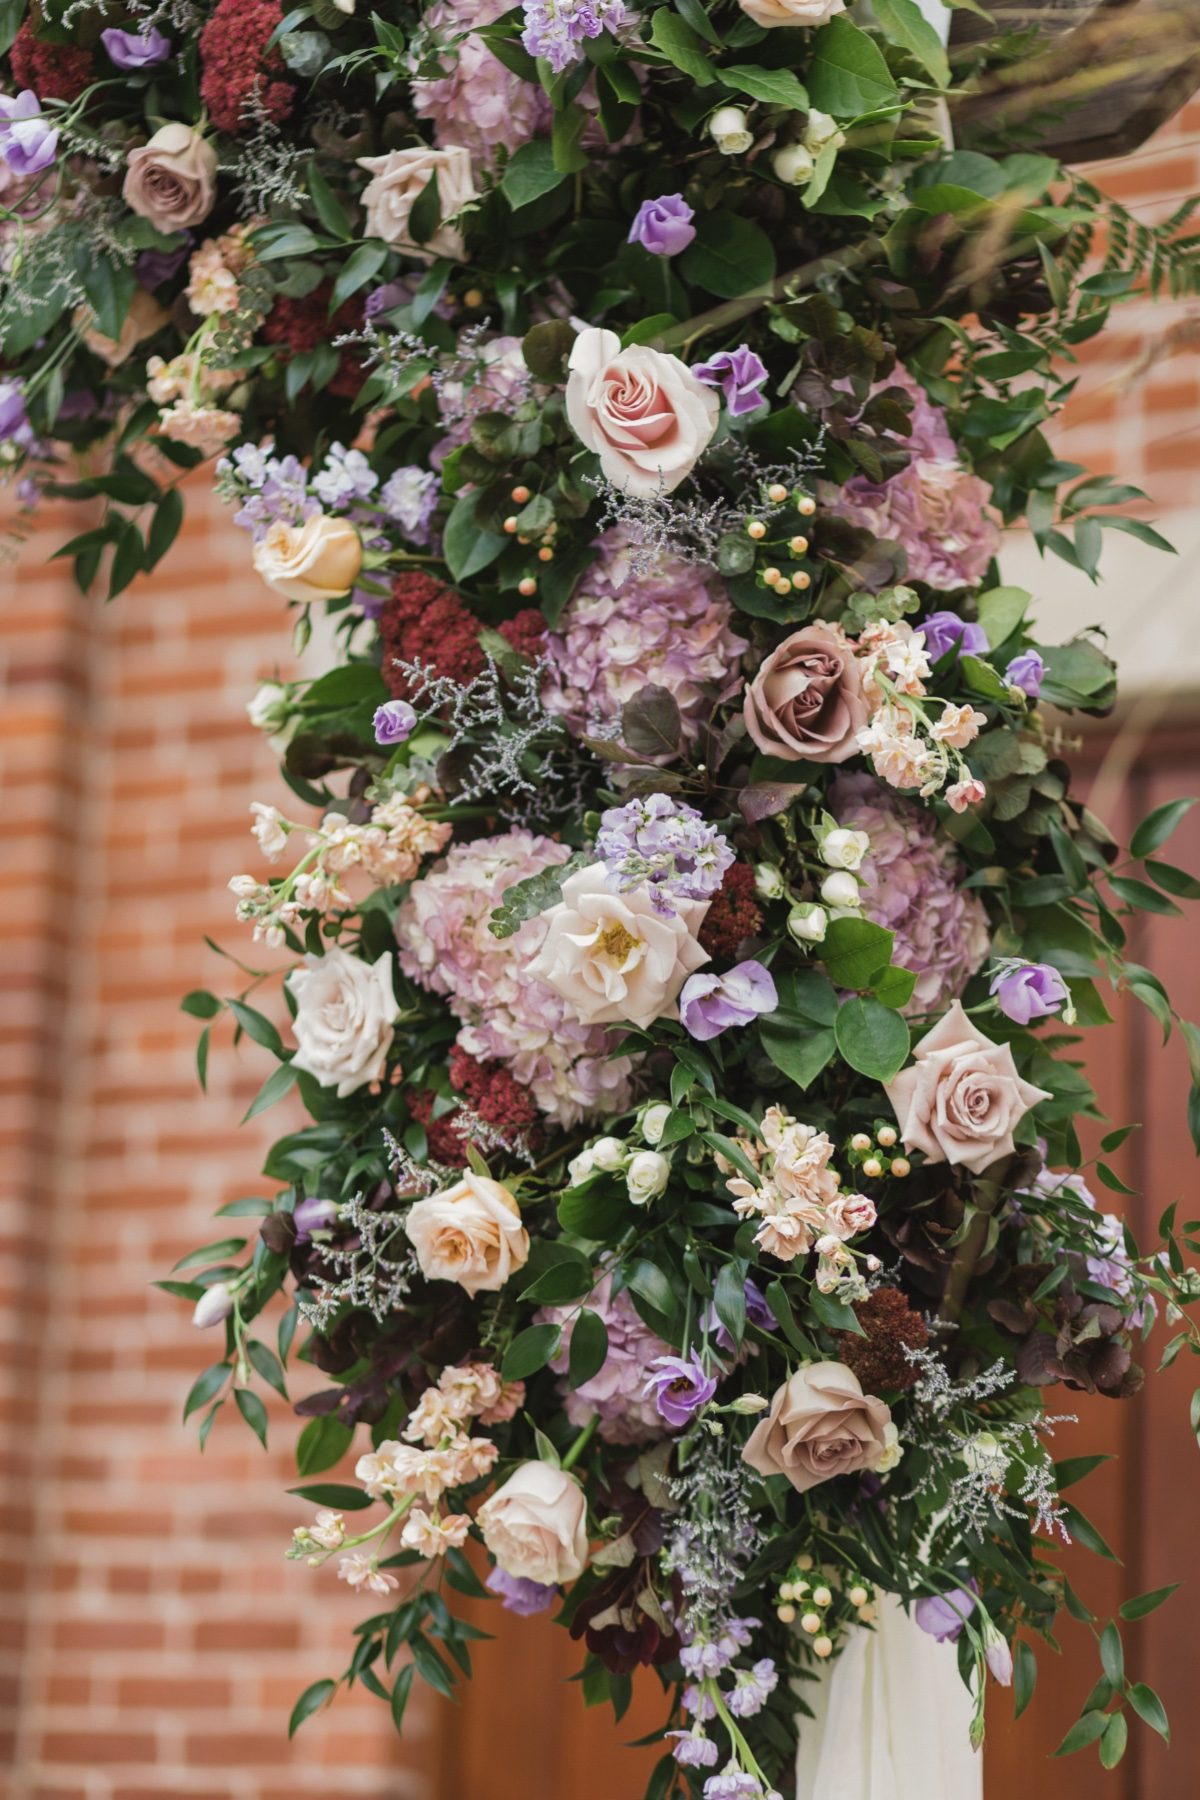 A Lilac-Filled Wedding Day Blooming With Lush Garden Inspiration